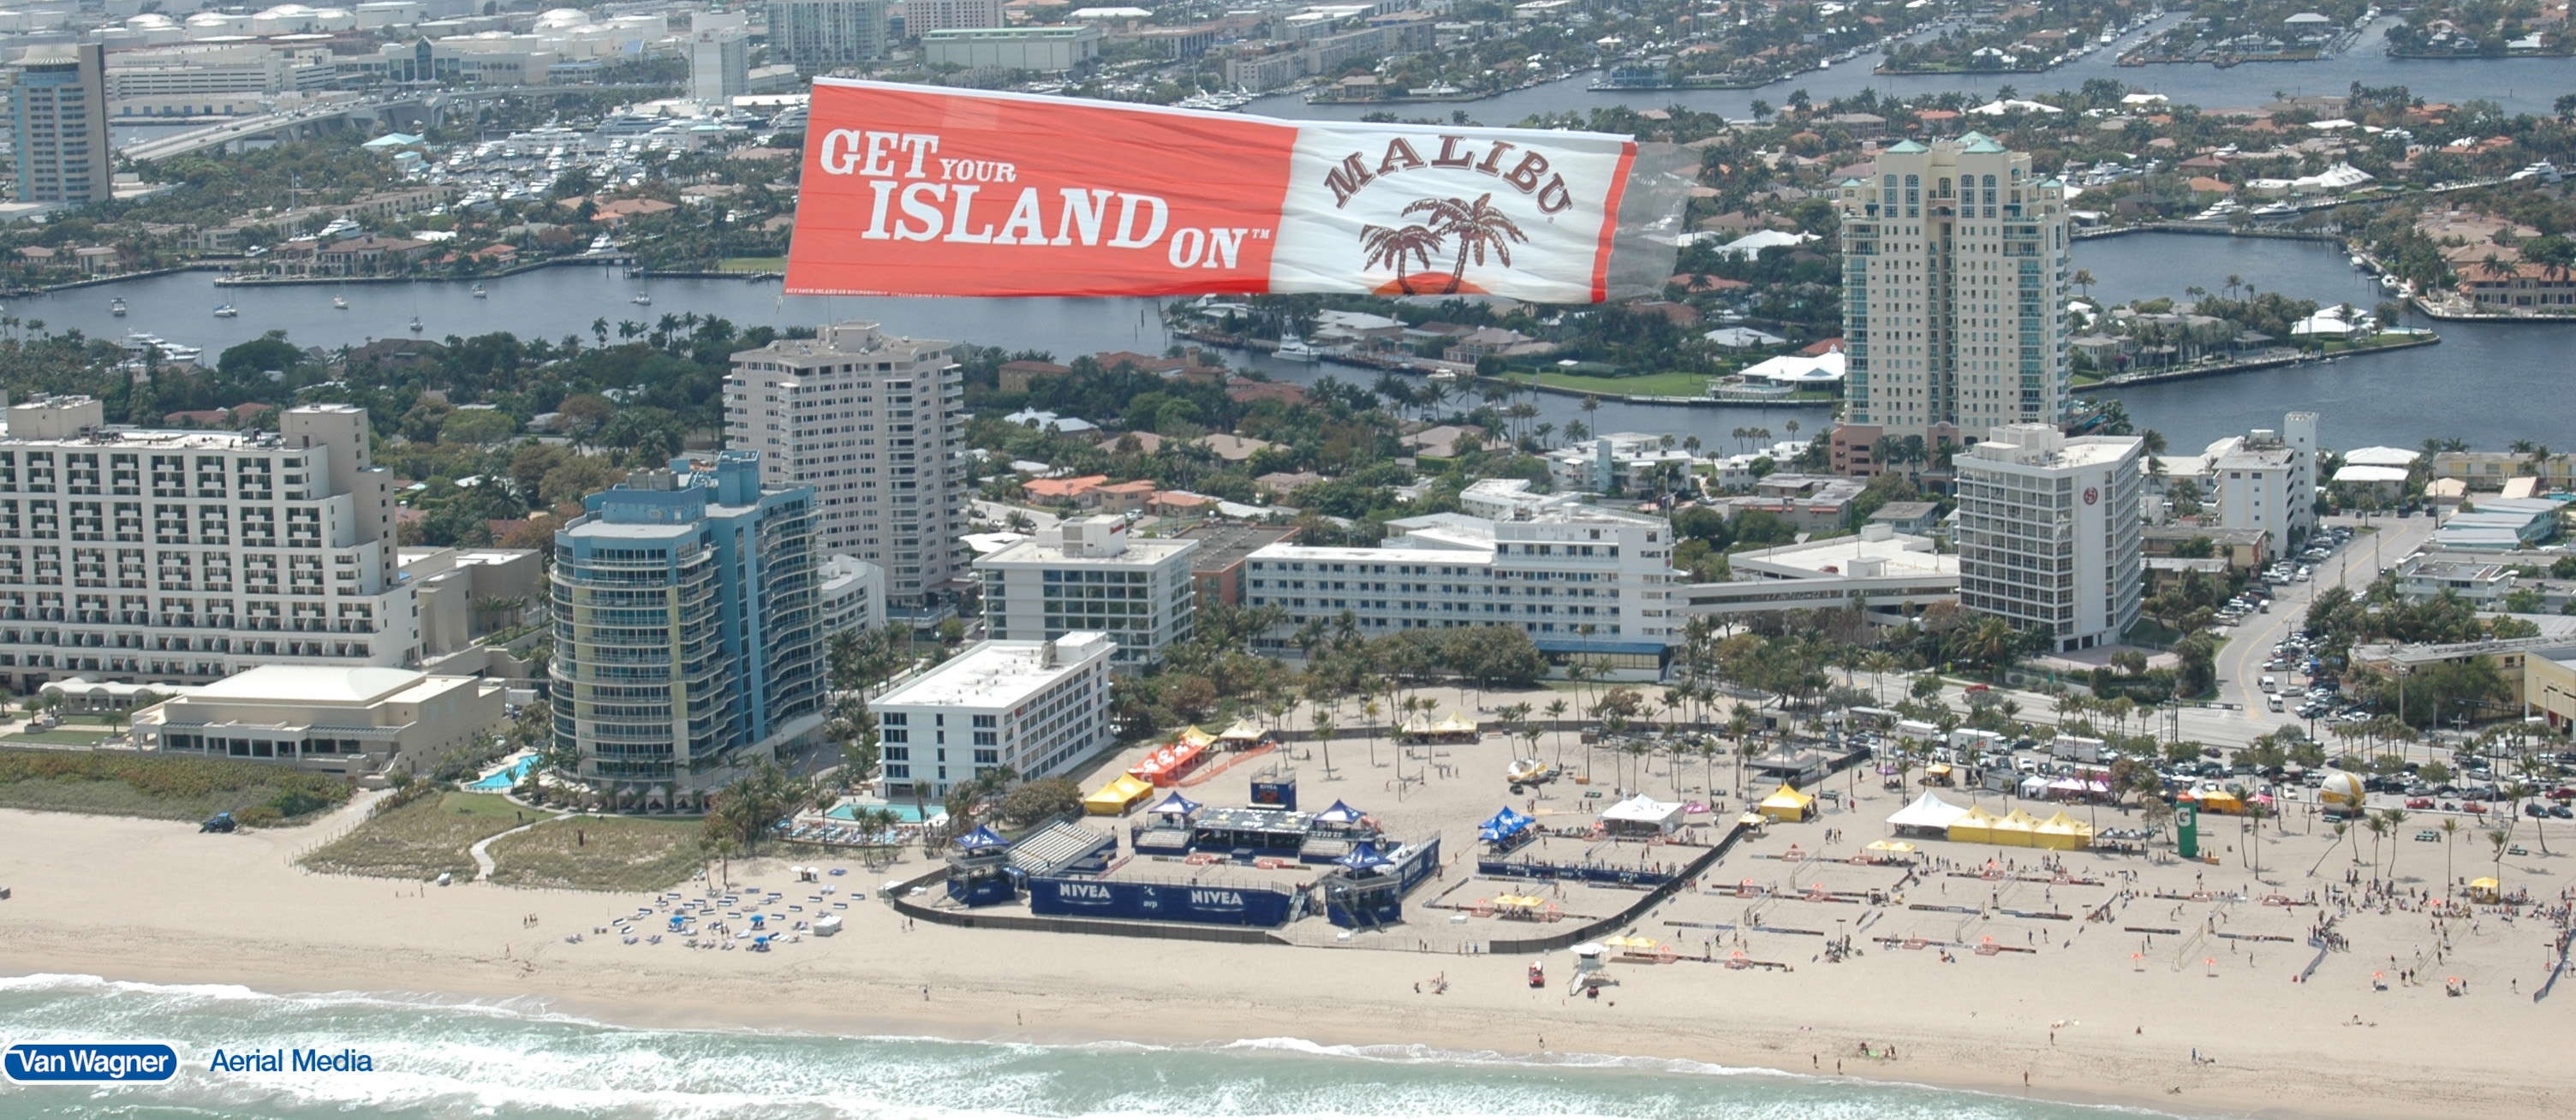 Fort Lauderdale aerial advertising